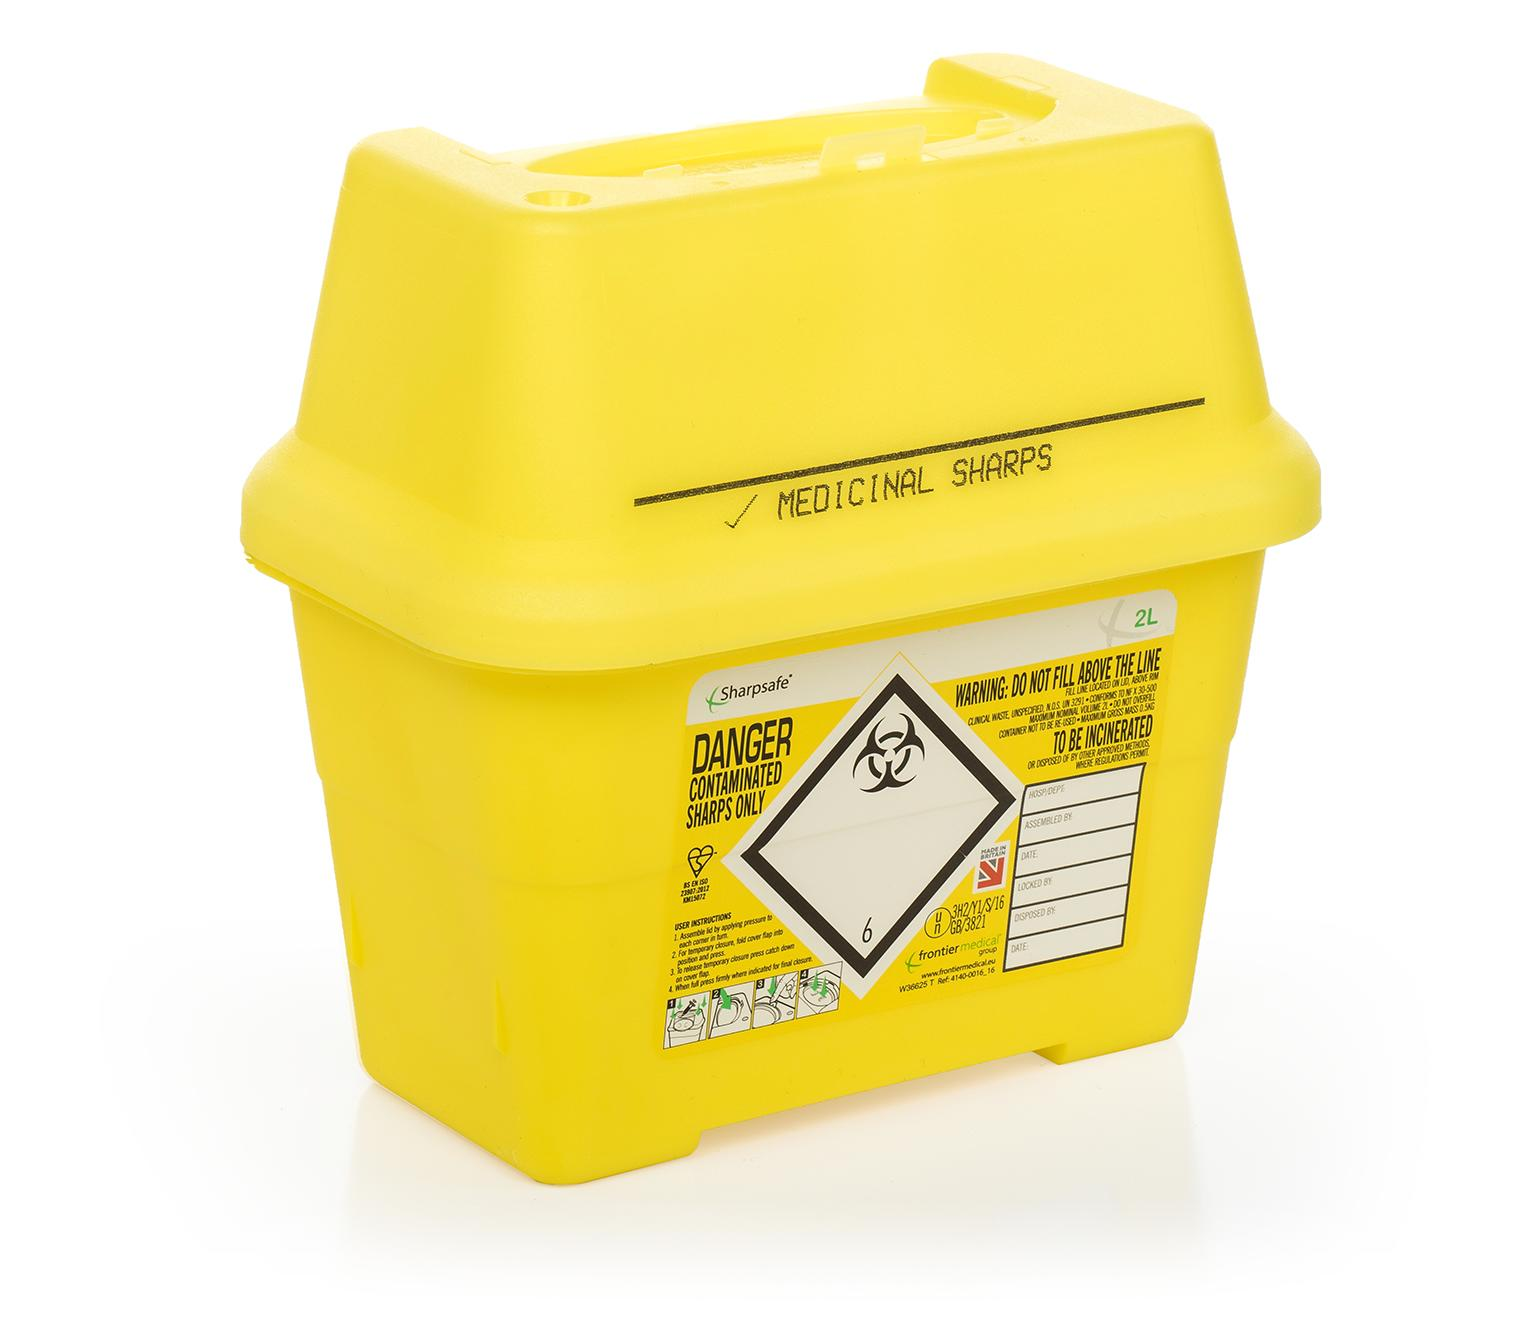 Medicinally contaminated sharps disposal bins (yellow lids)